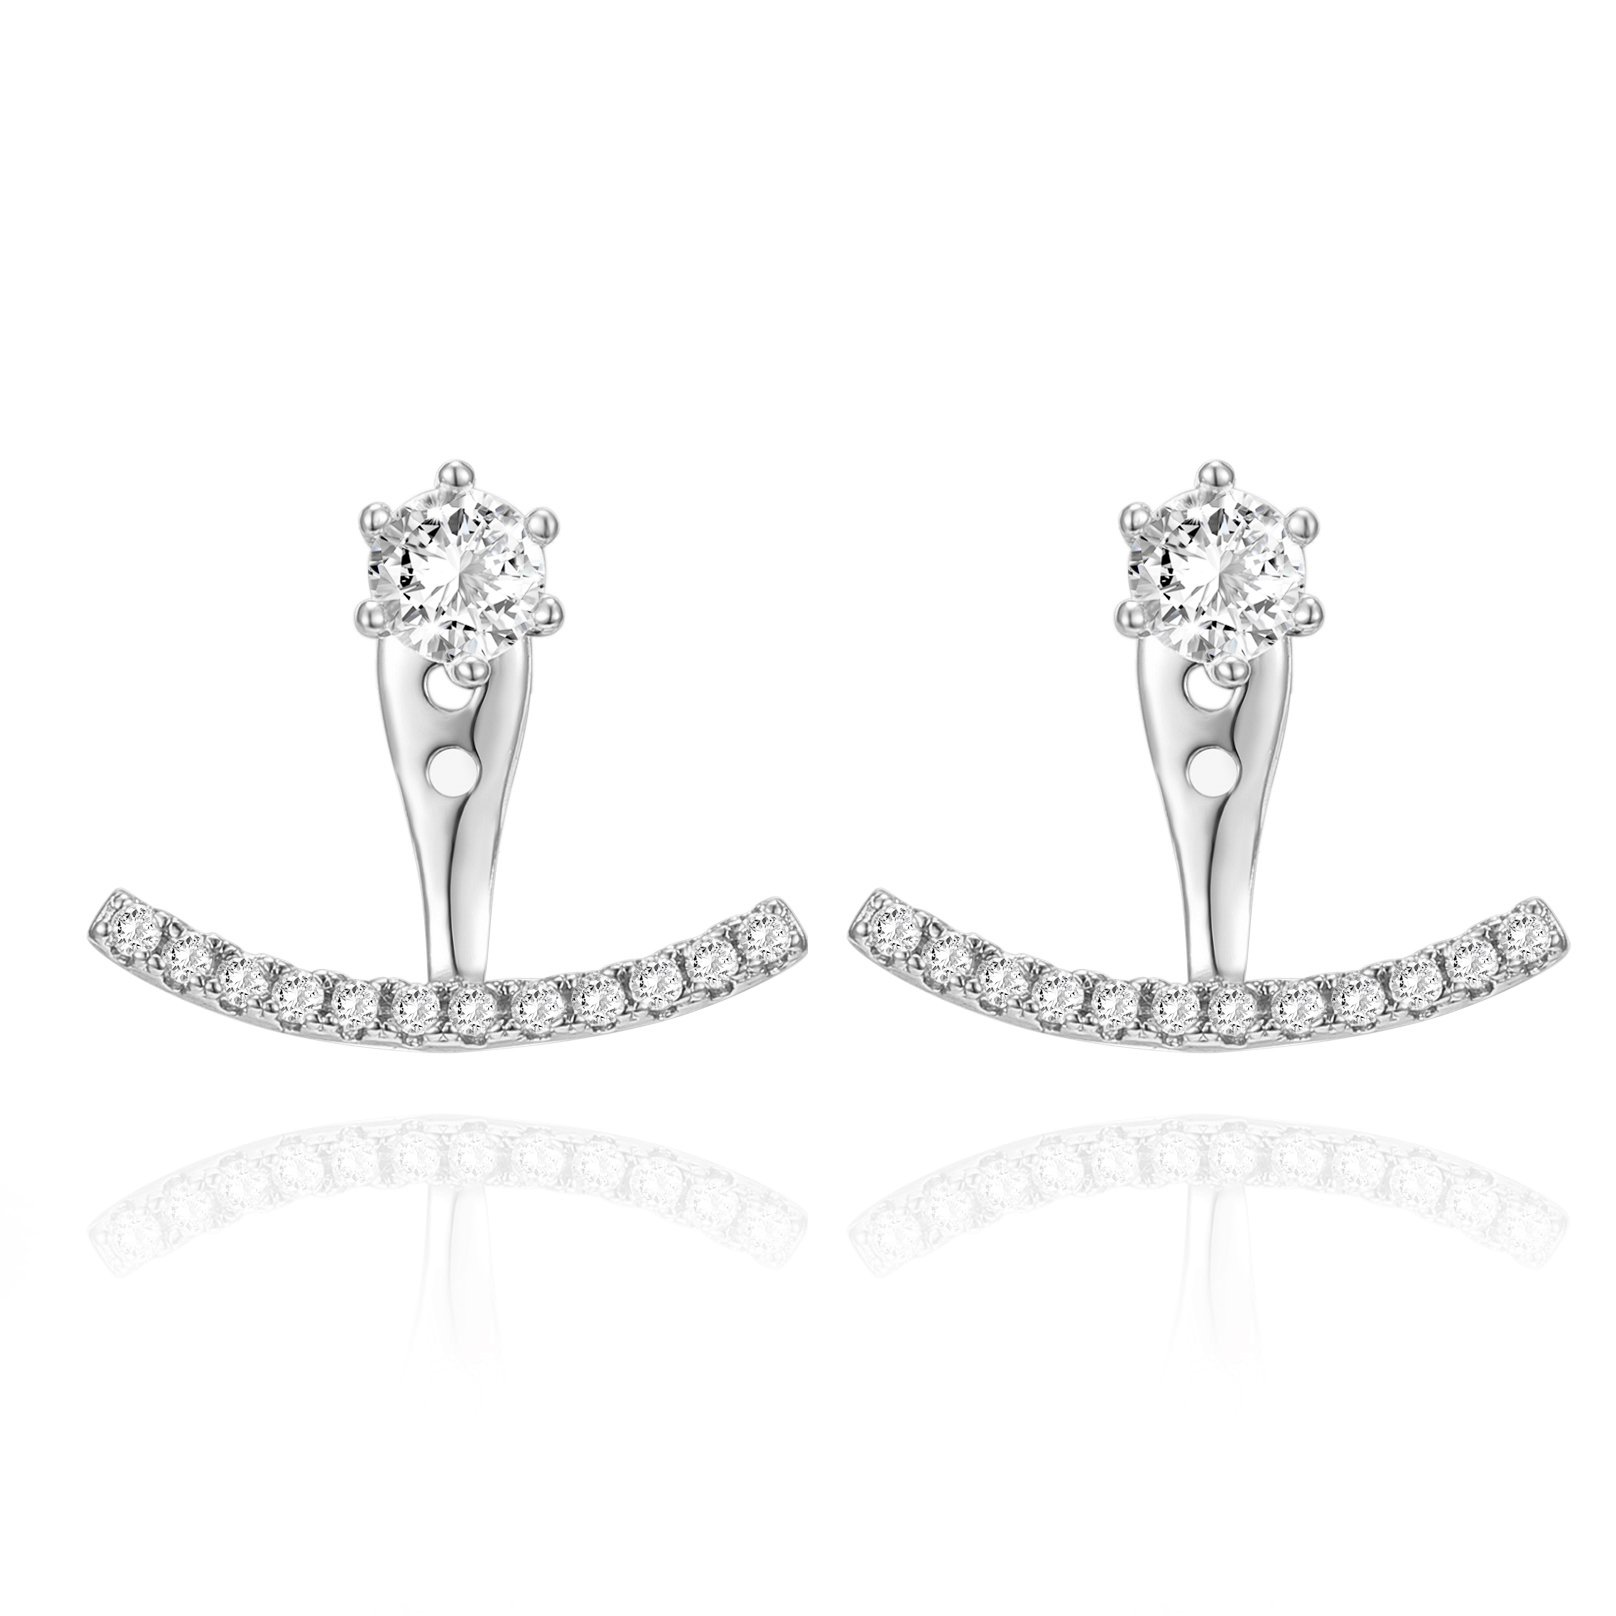 PAVOI 14K White Gold Plated Sterling Silver Post Cubic Zirconia Stud Earrings with Huggie Crawler Enhancer